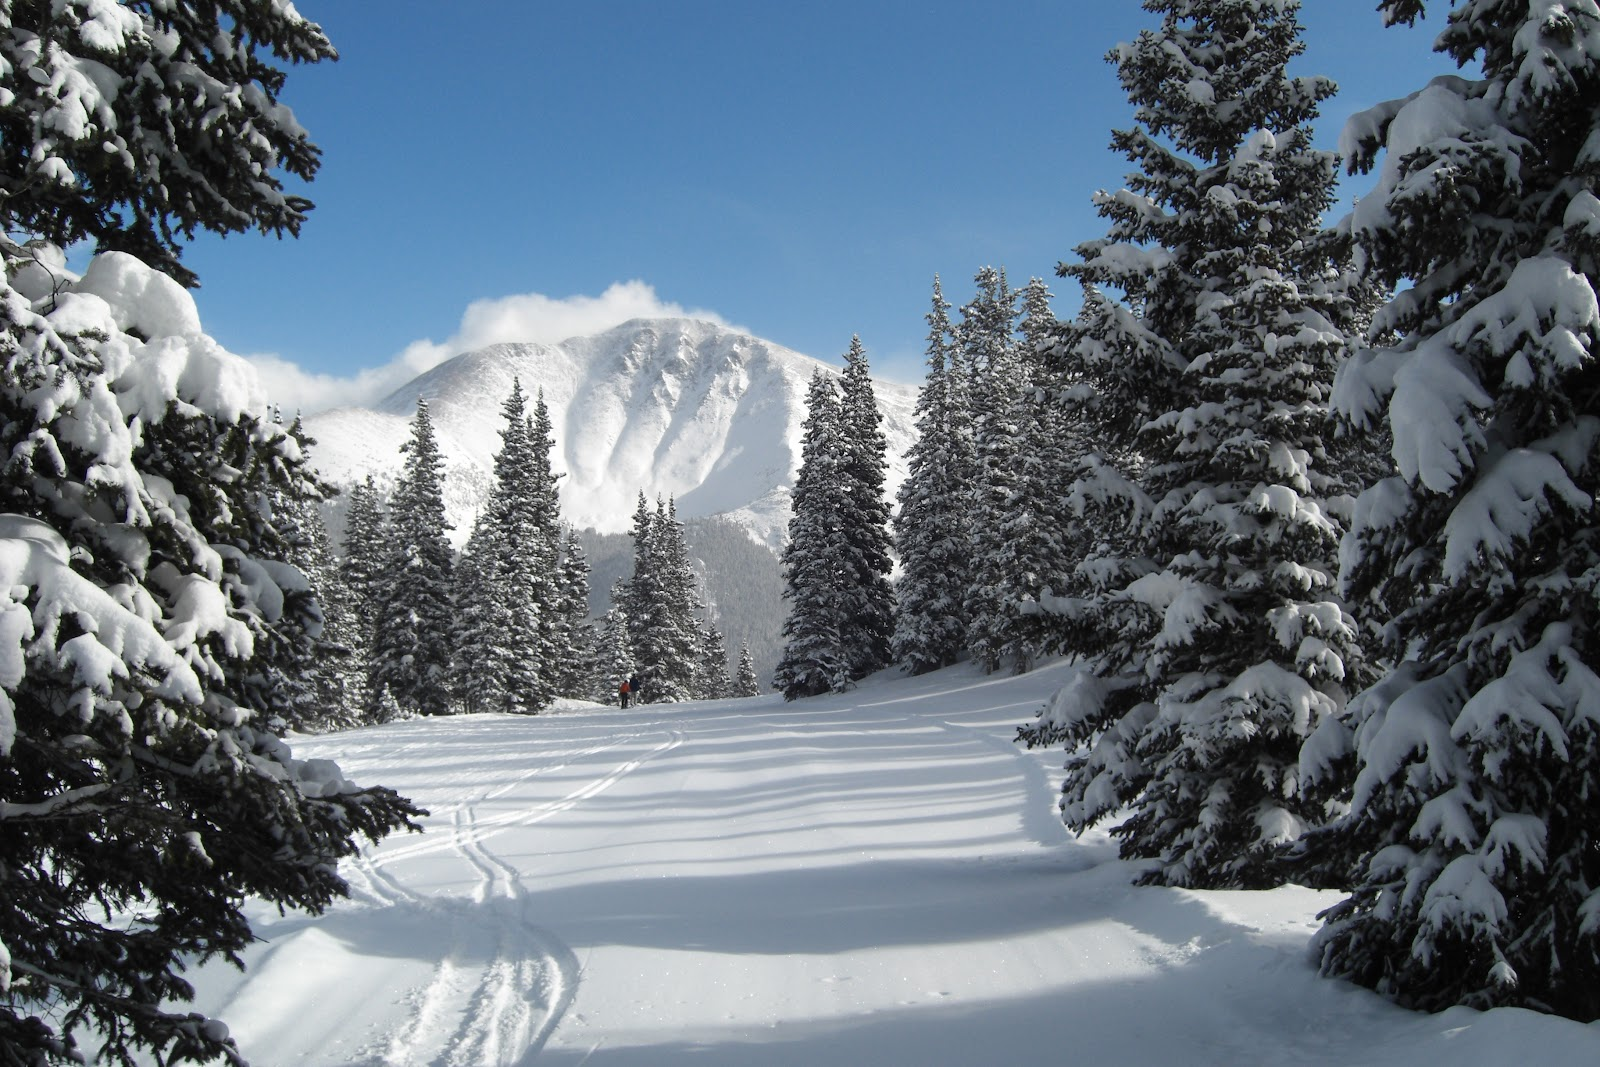 File:Parry Peak from Winter